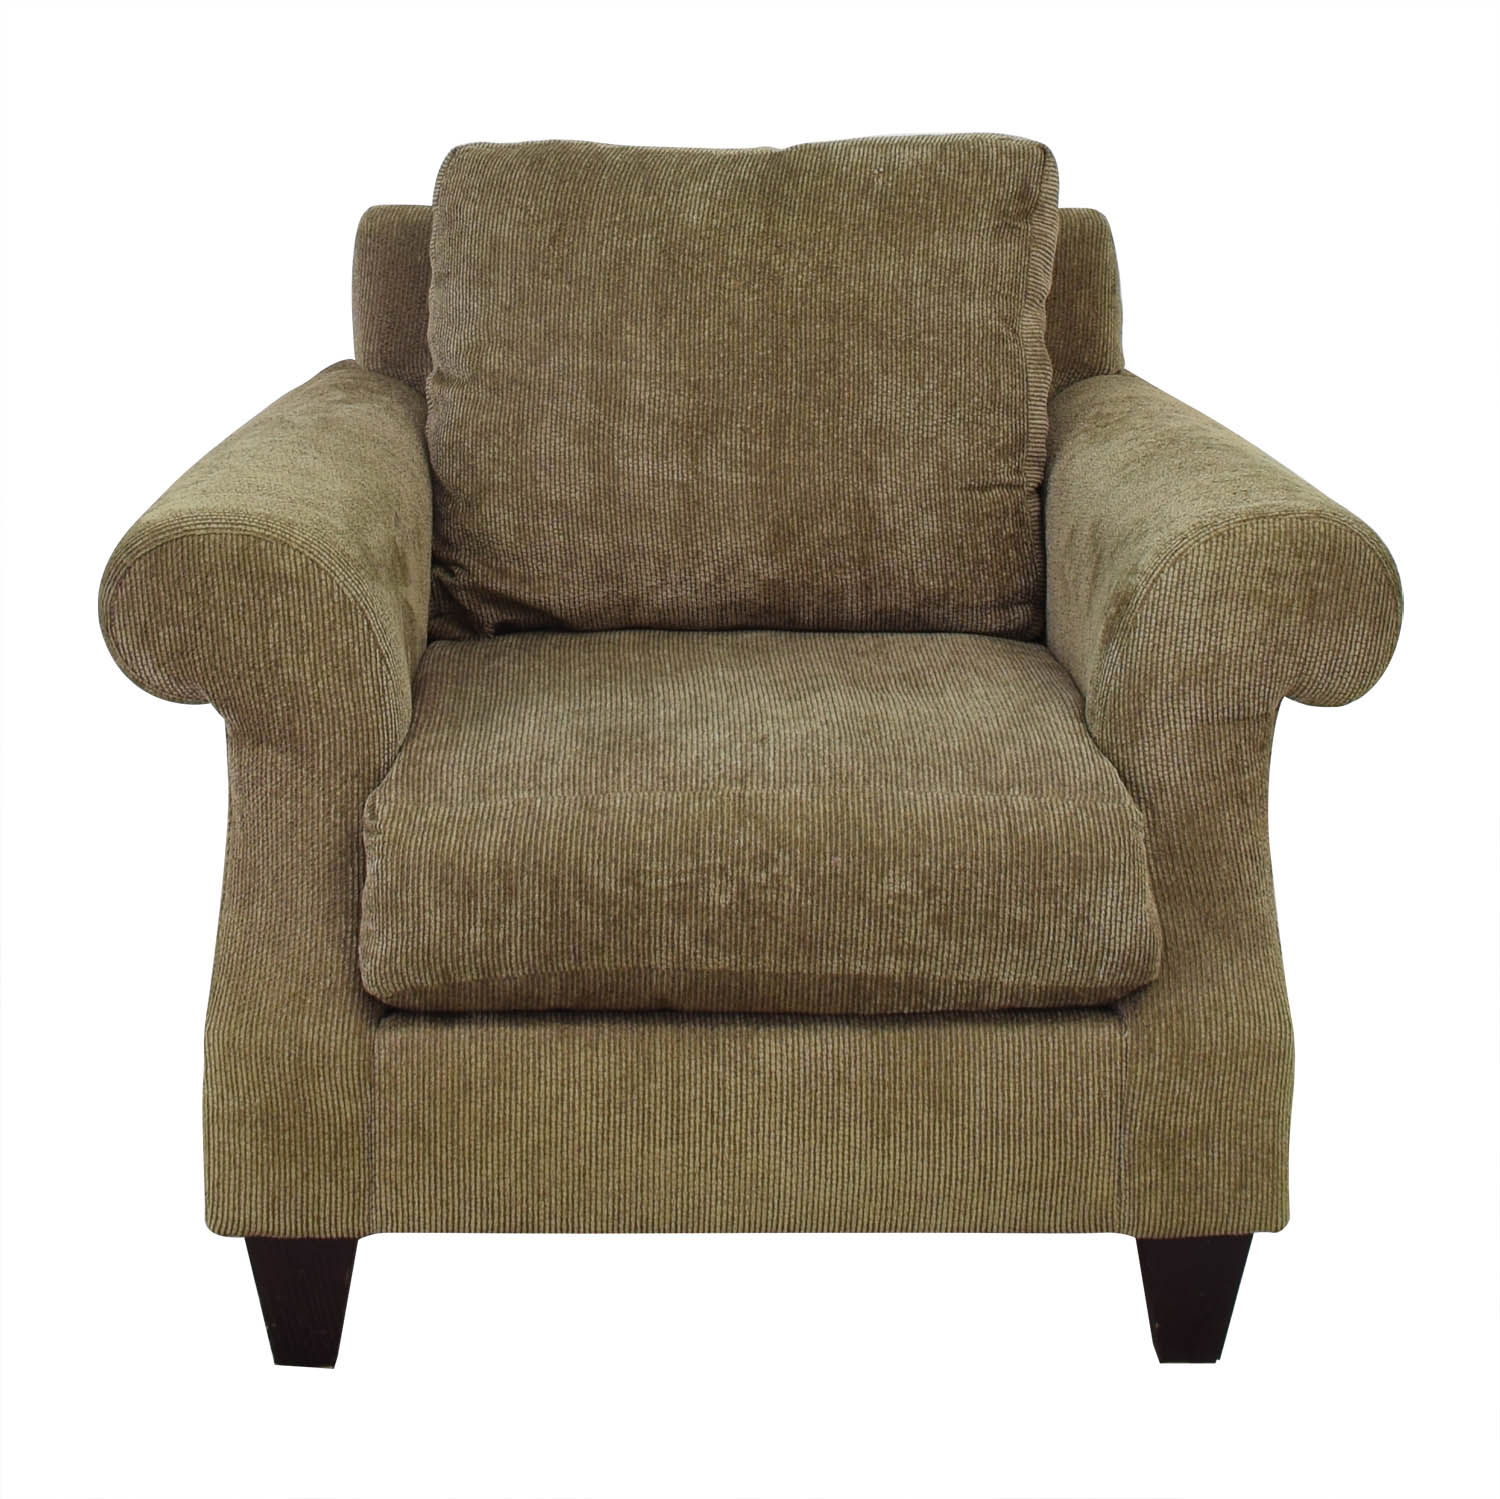 Bernhardt Bernhardt Club Chair Accent Chairs